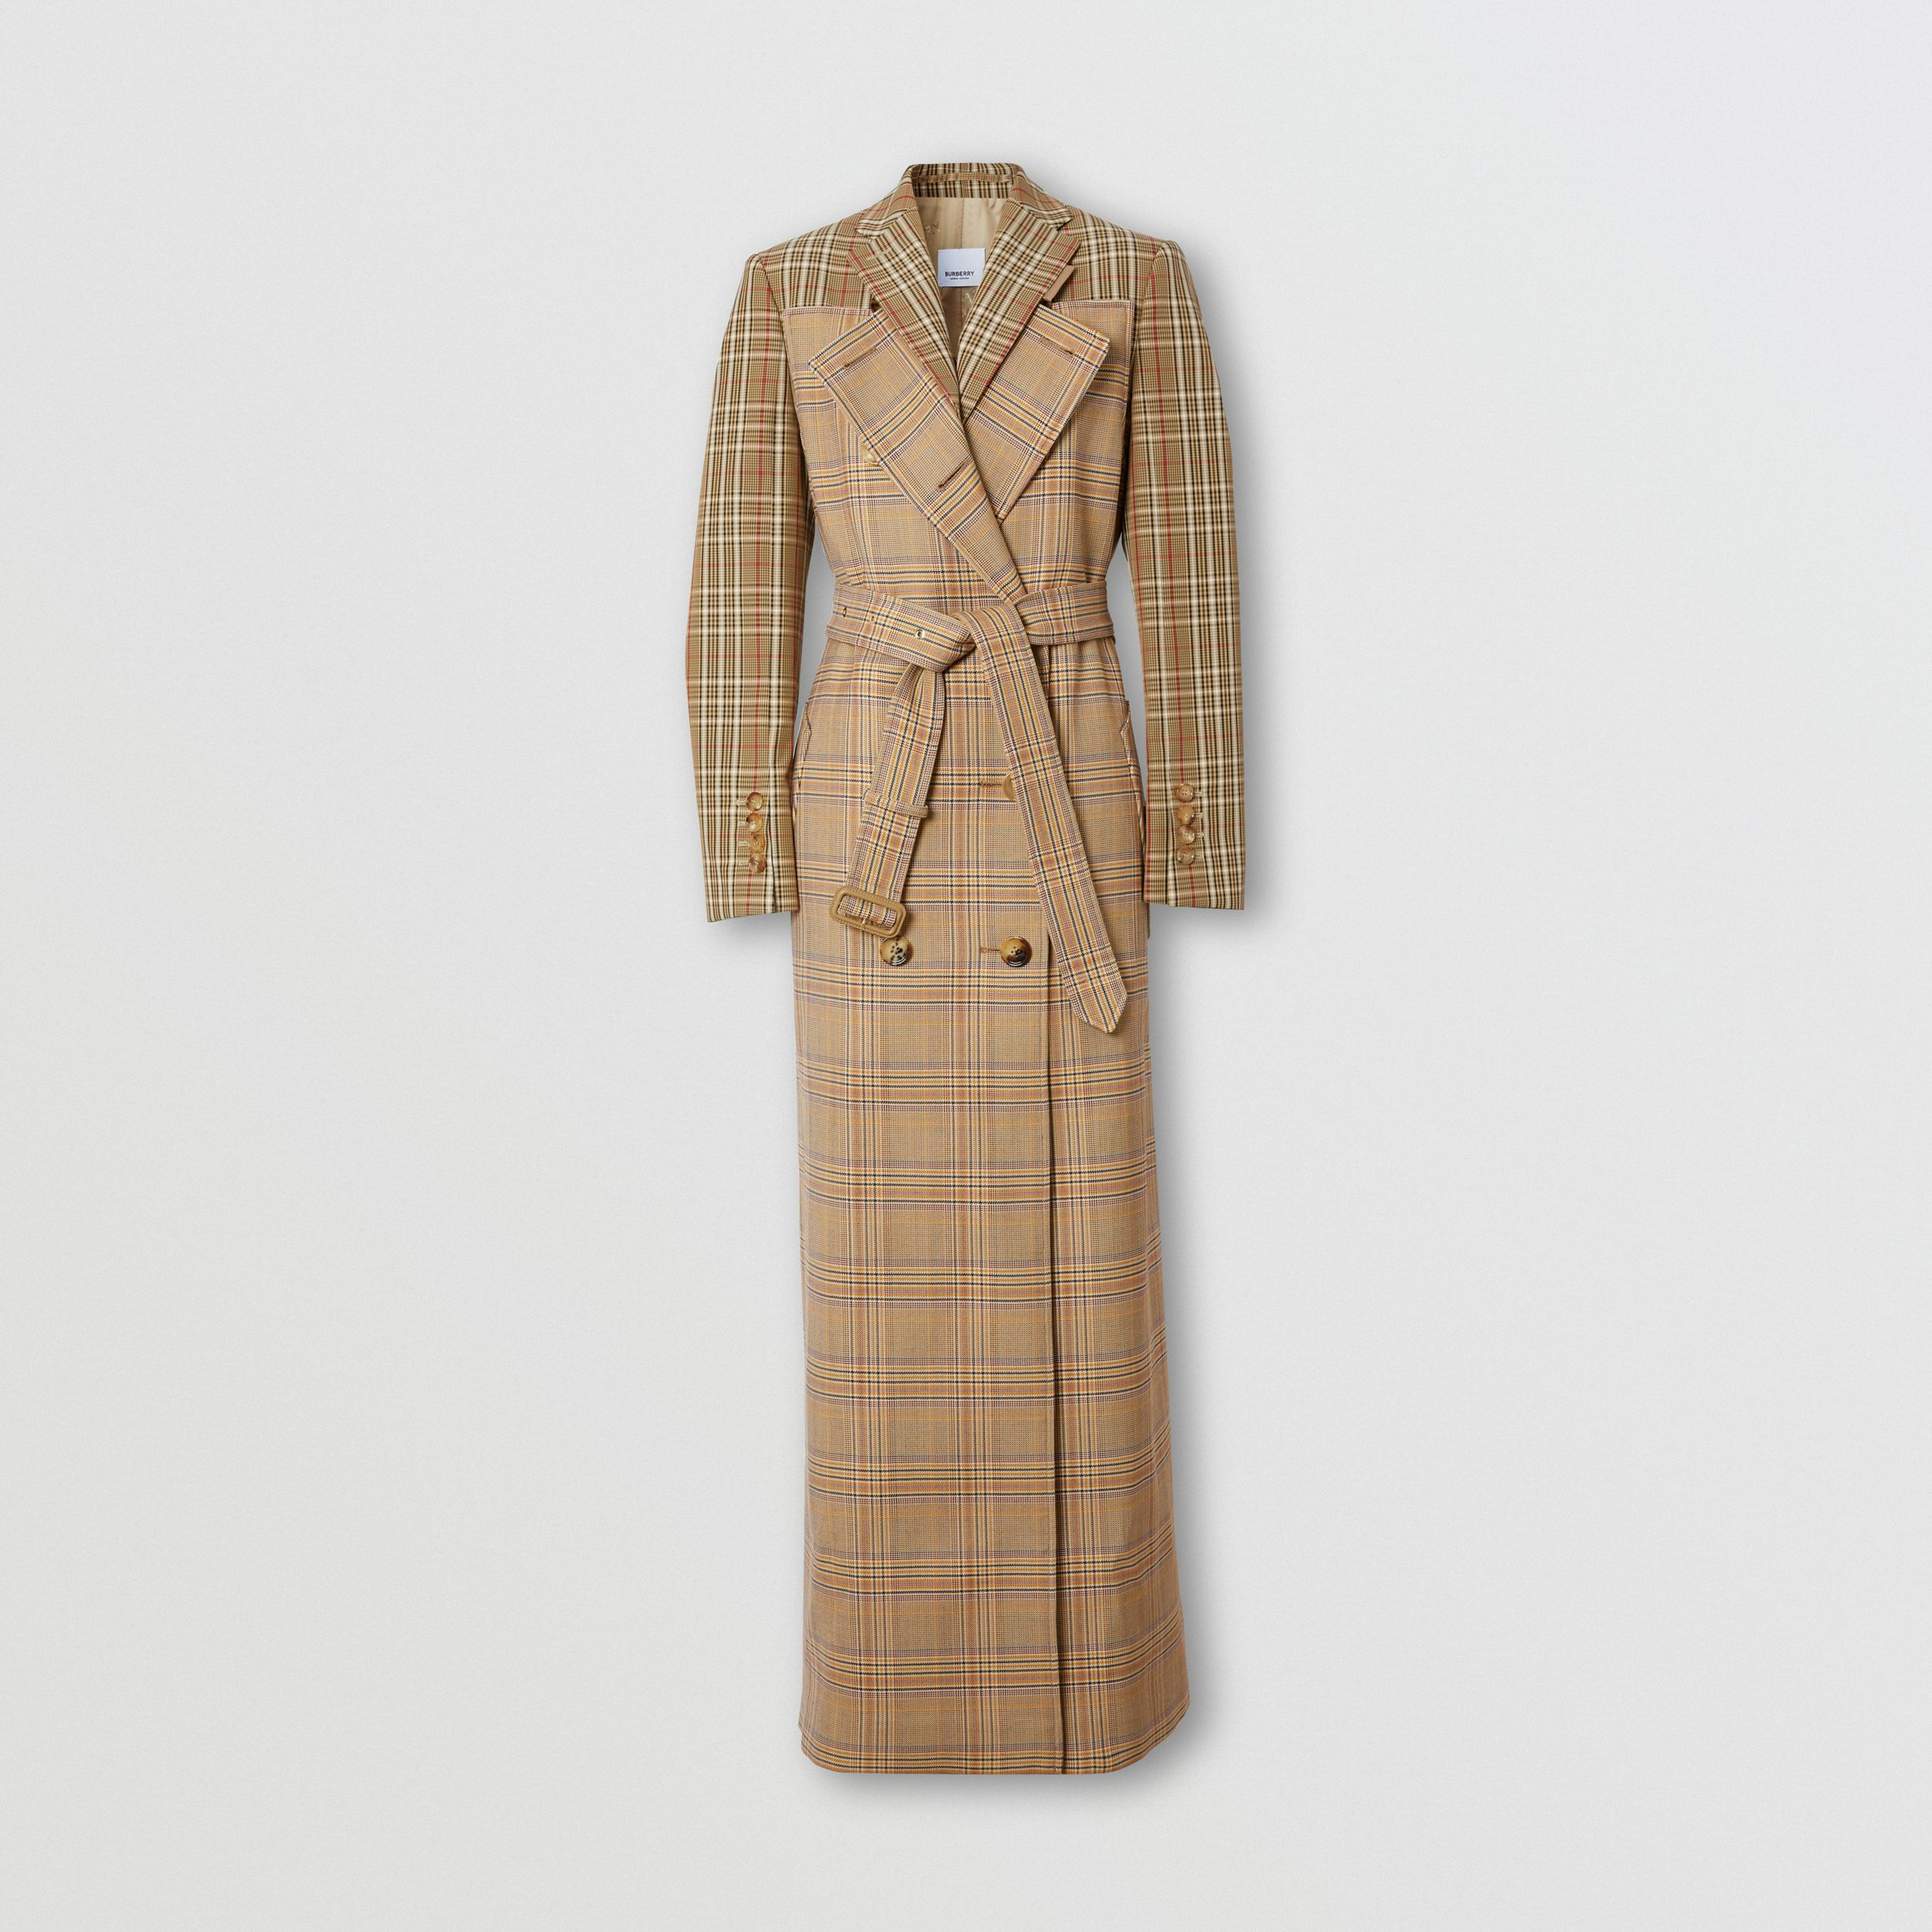 Contrast Check Wool Cotton Trench Coat in Dark Honey - Women | Burberry - 4